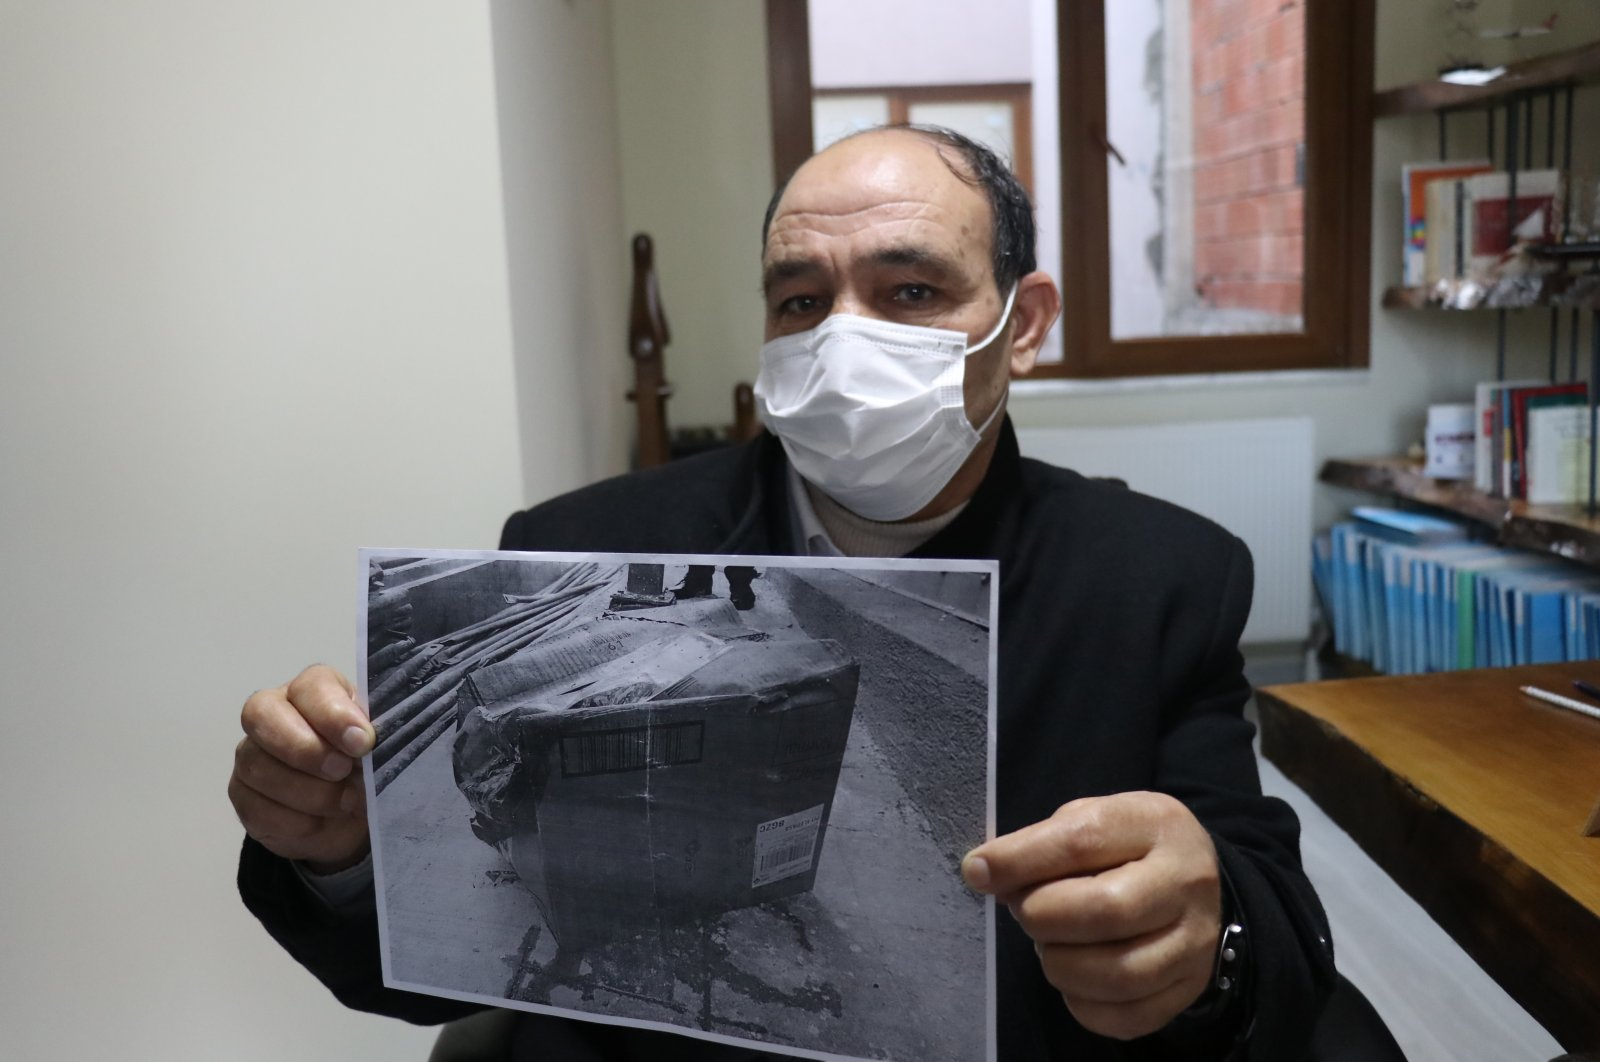 Ahmet Kıral shows reporters the box his spleen was delivered in, in Yalova, northwestern Turkey, Feb. 1, 2021. (AA Photo)